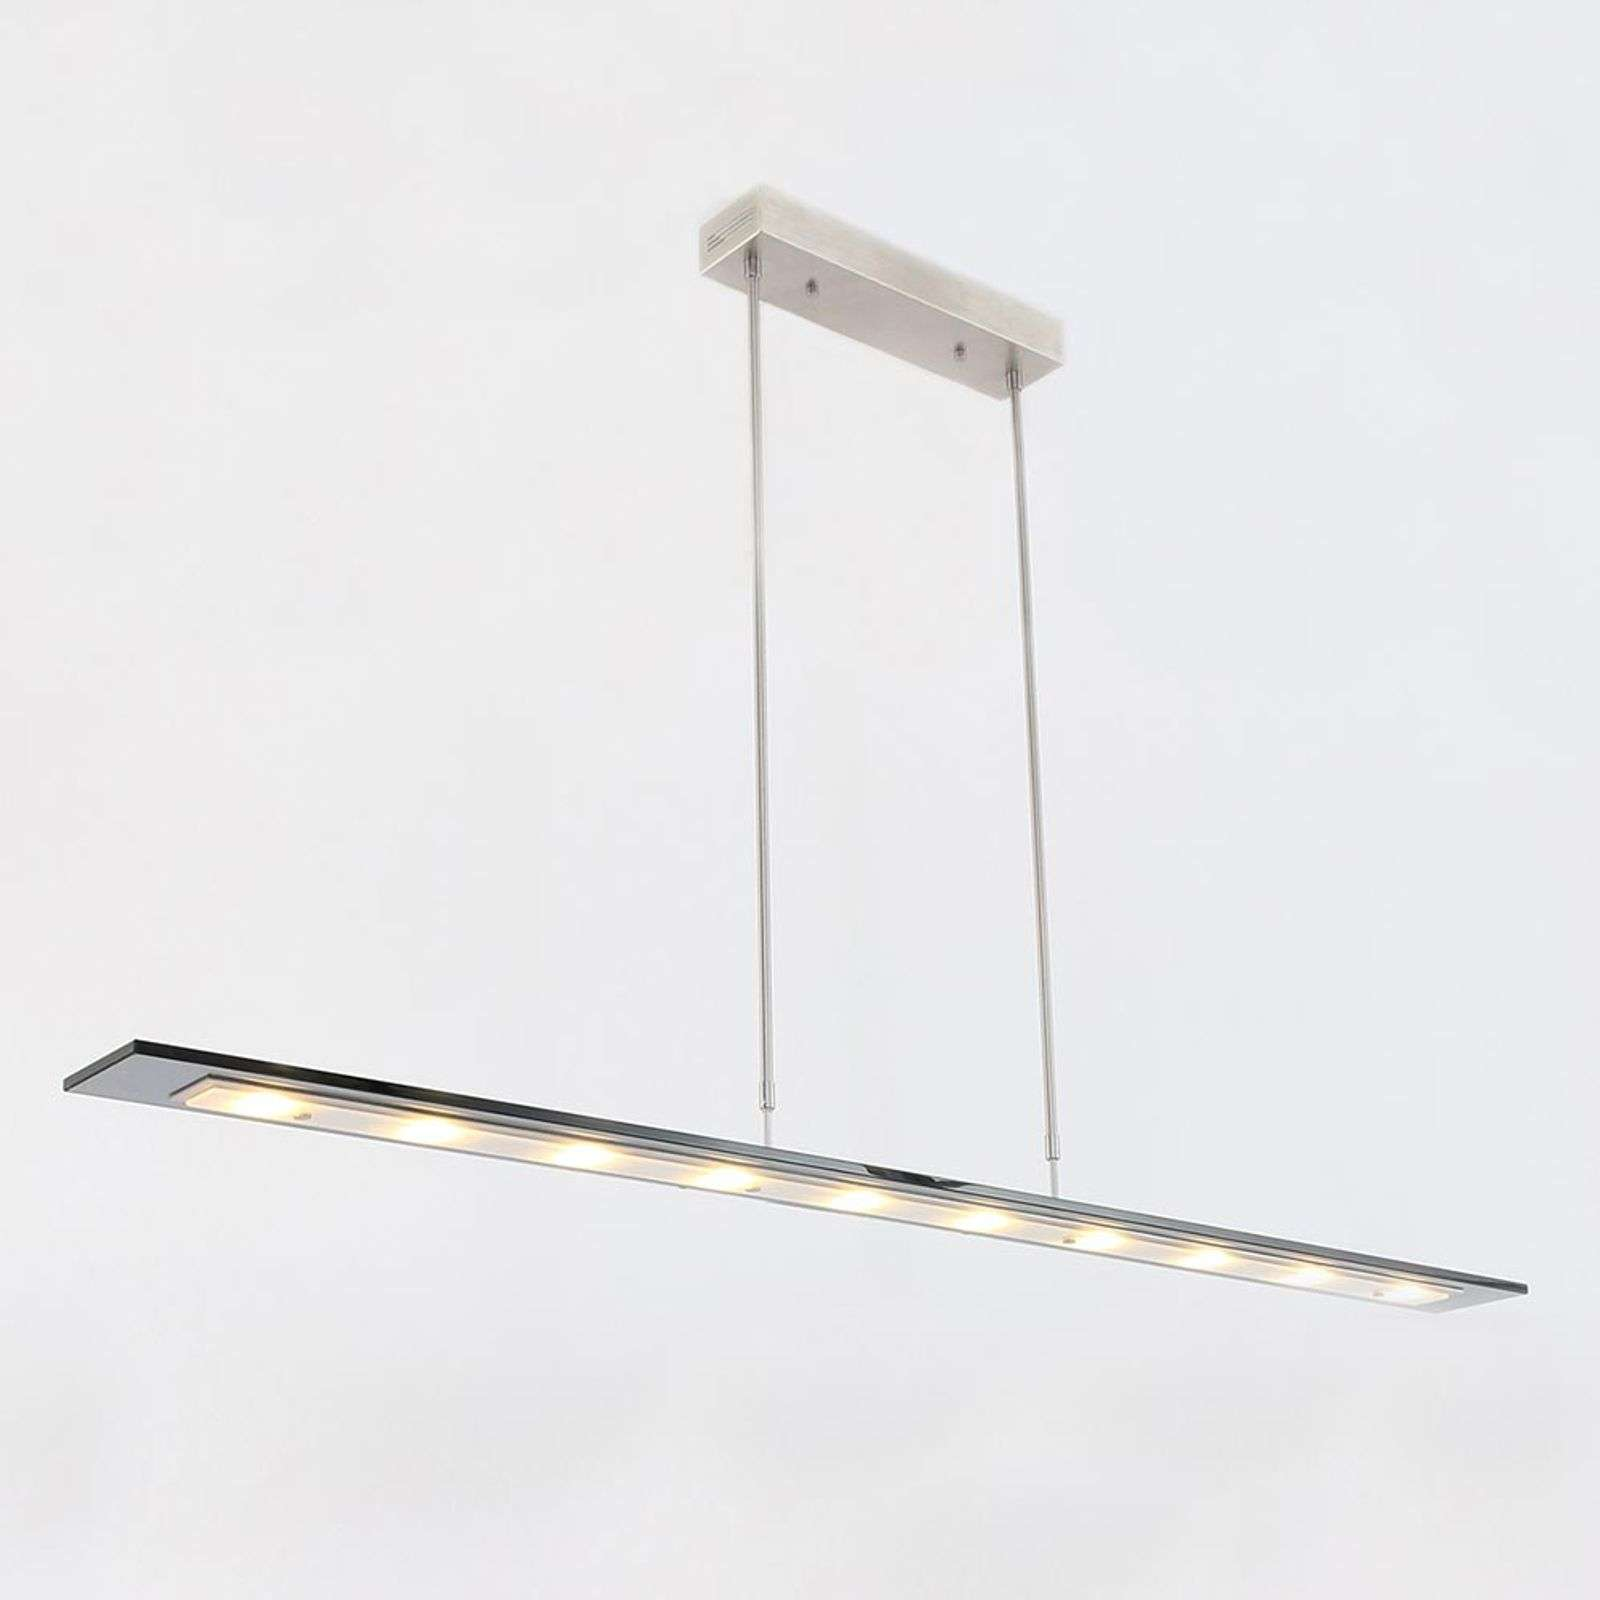 Plato - Suspension LED 140cm de long gris clair